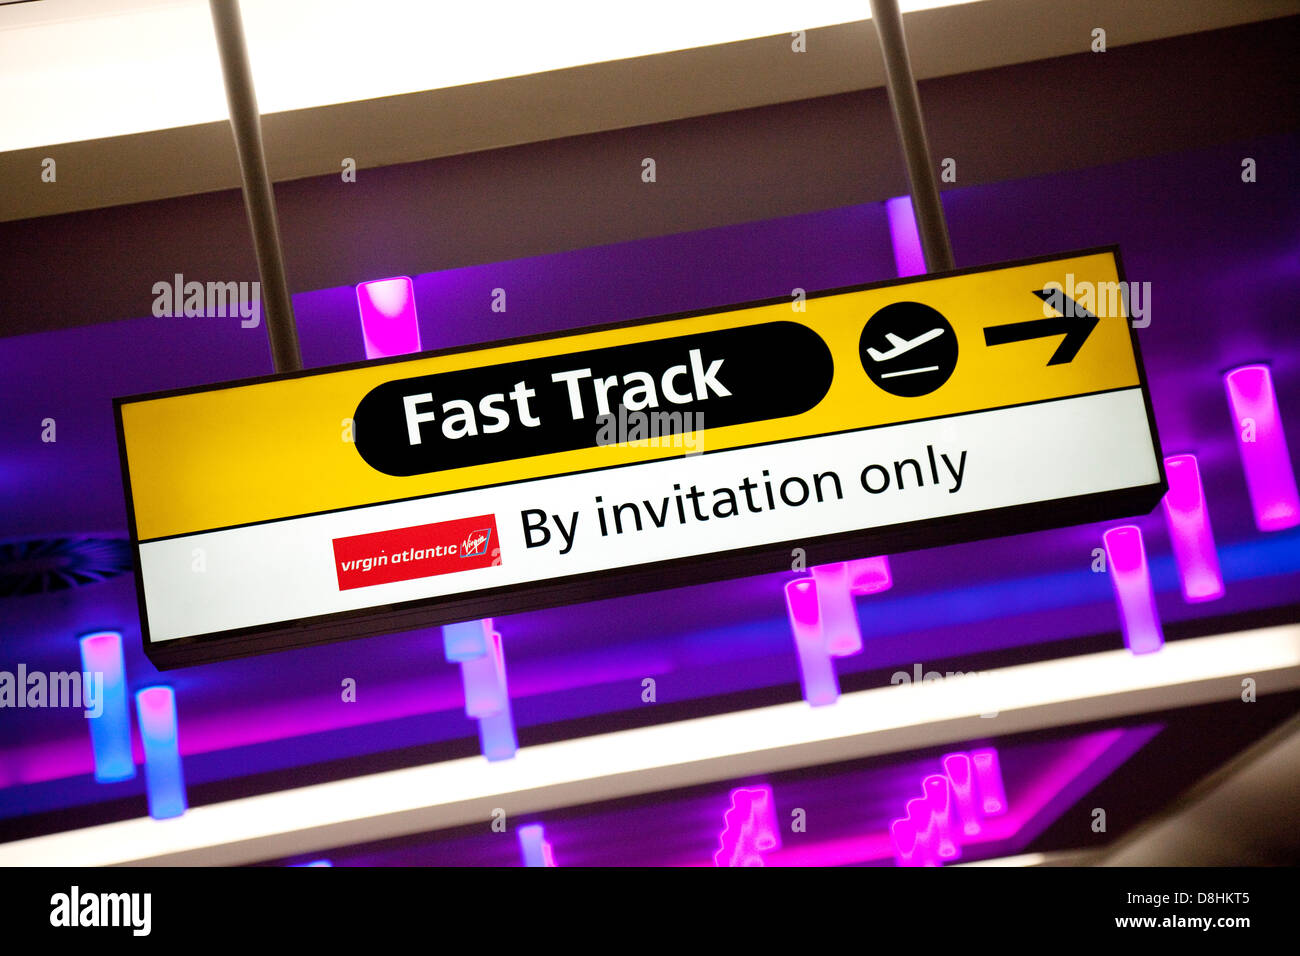 how to buy a 3 sim at heathrow airport